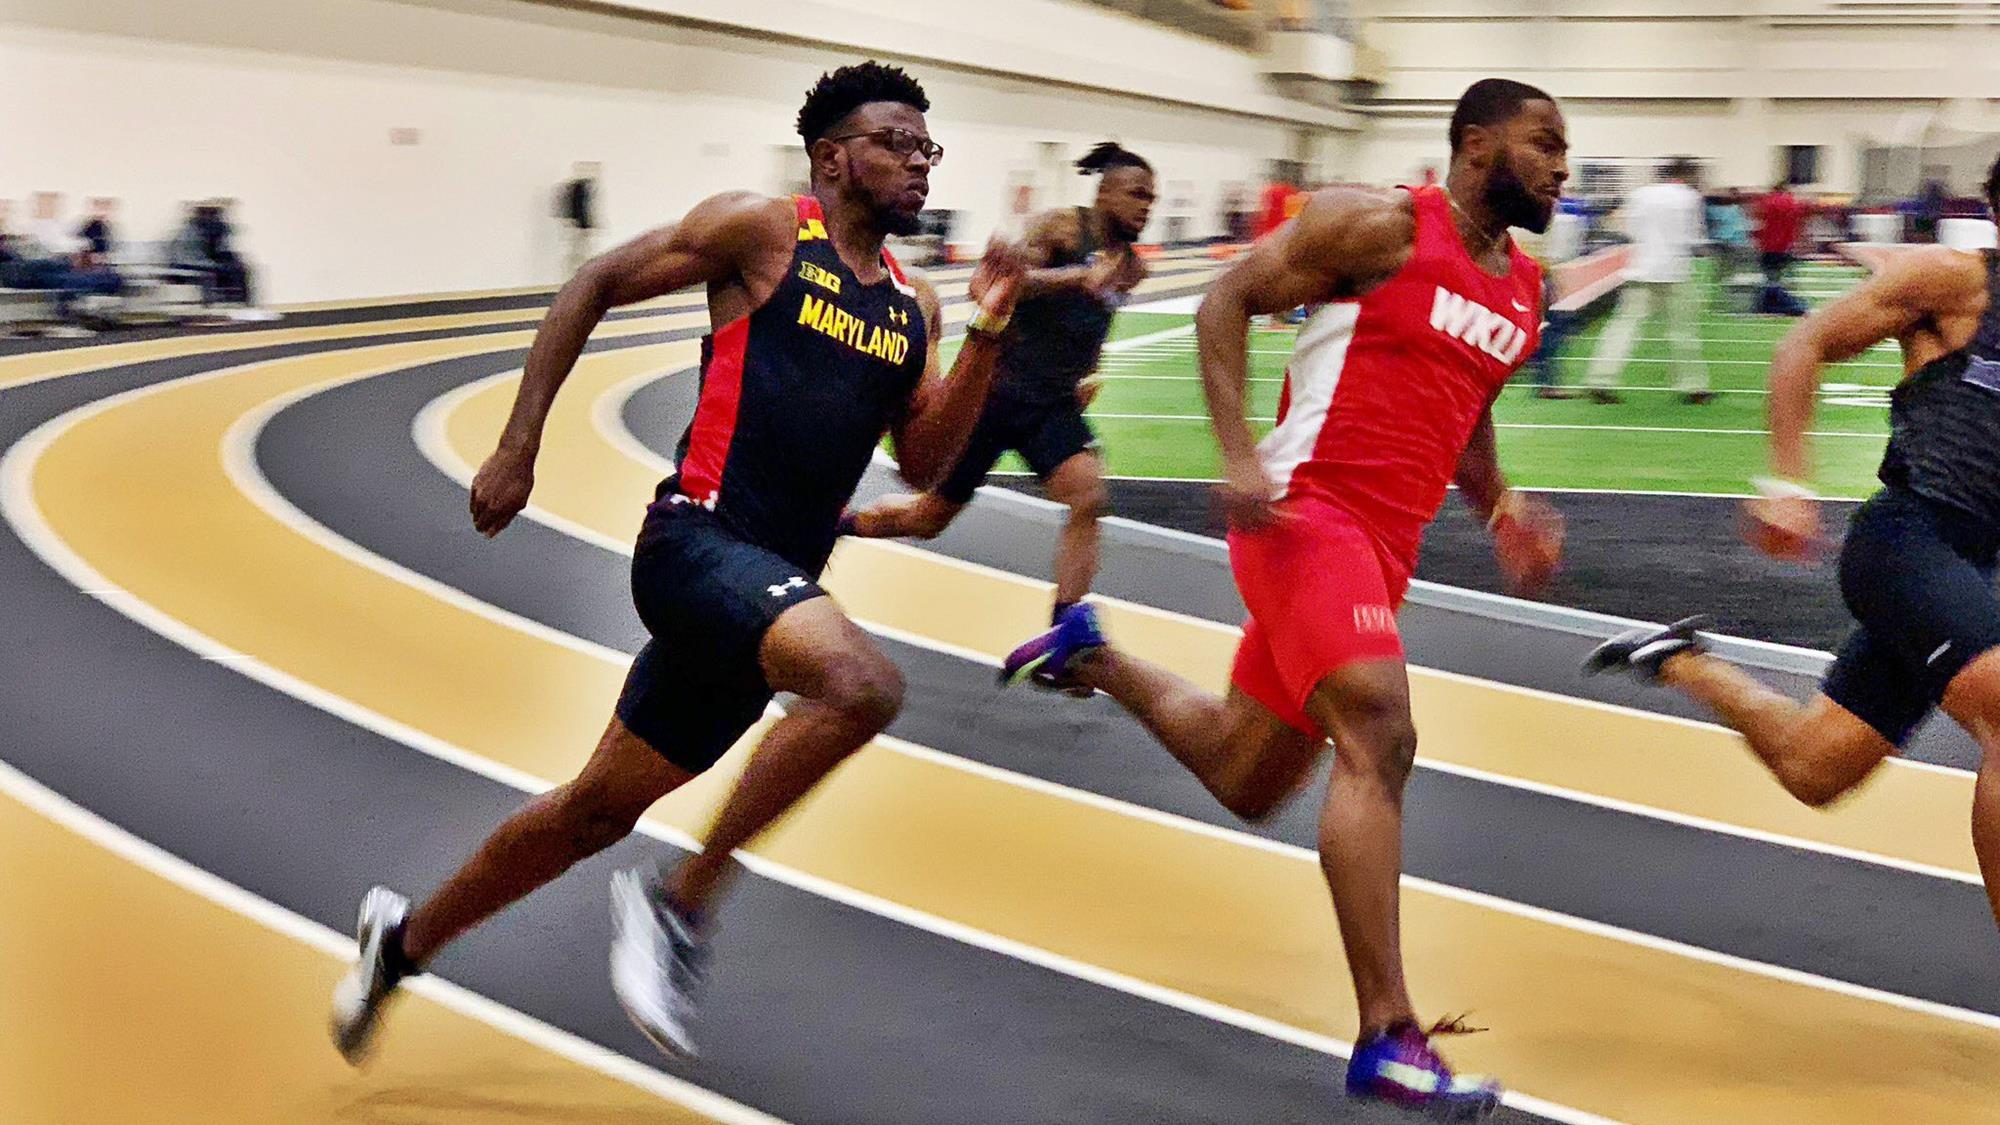 Deshawn Morris wins 400m, finishes 4th in 200m at US indoor meet